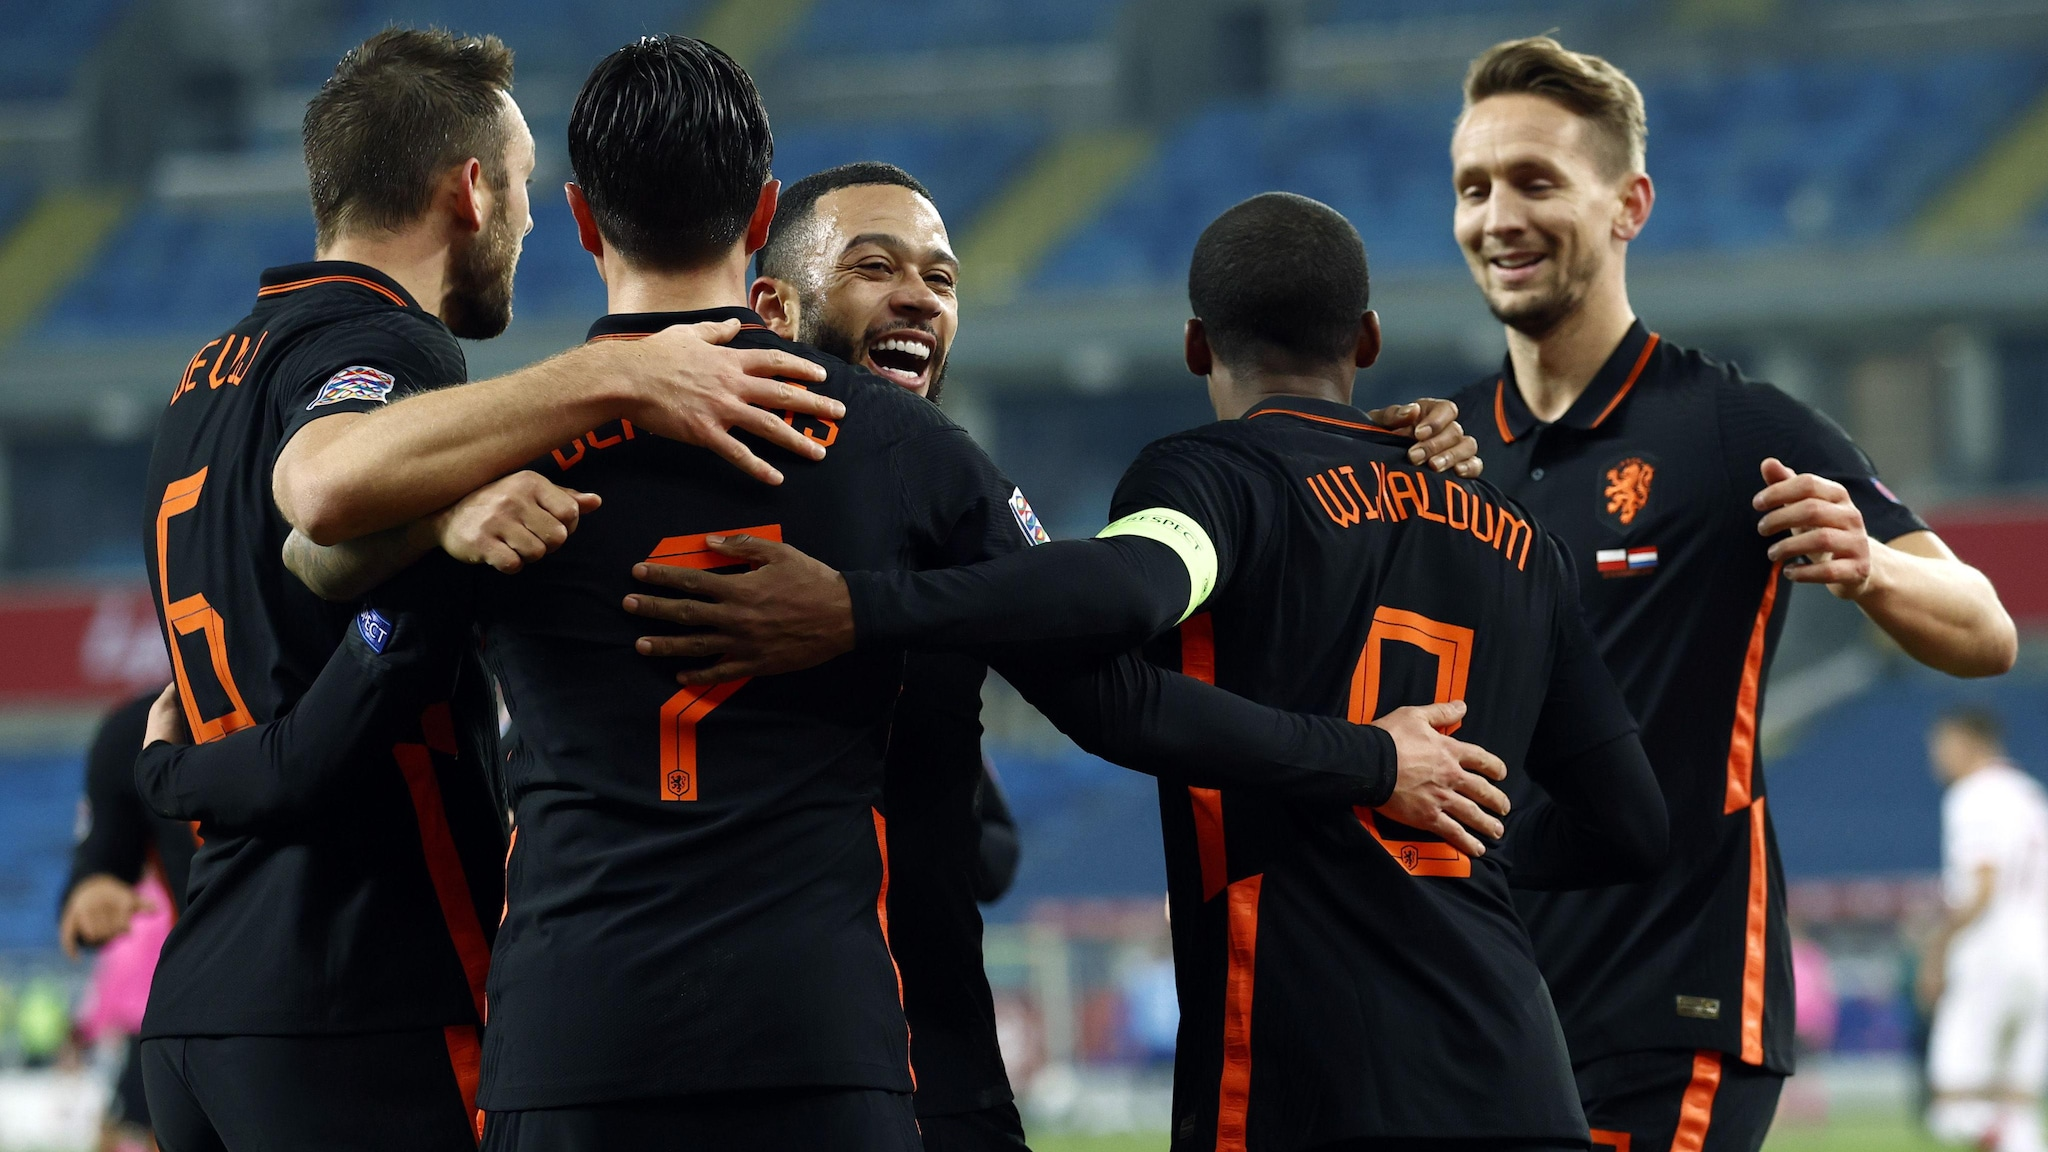 Report: Poland 1-2 Netherlands